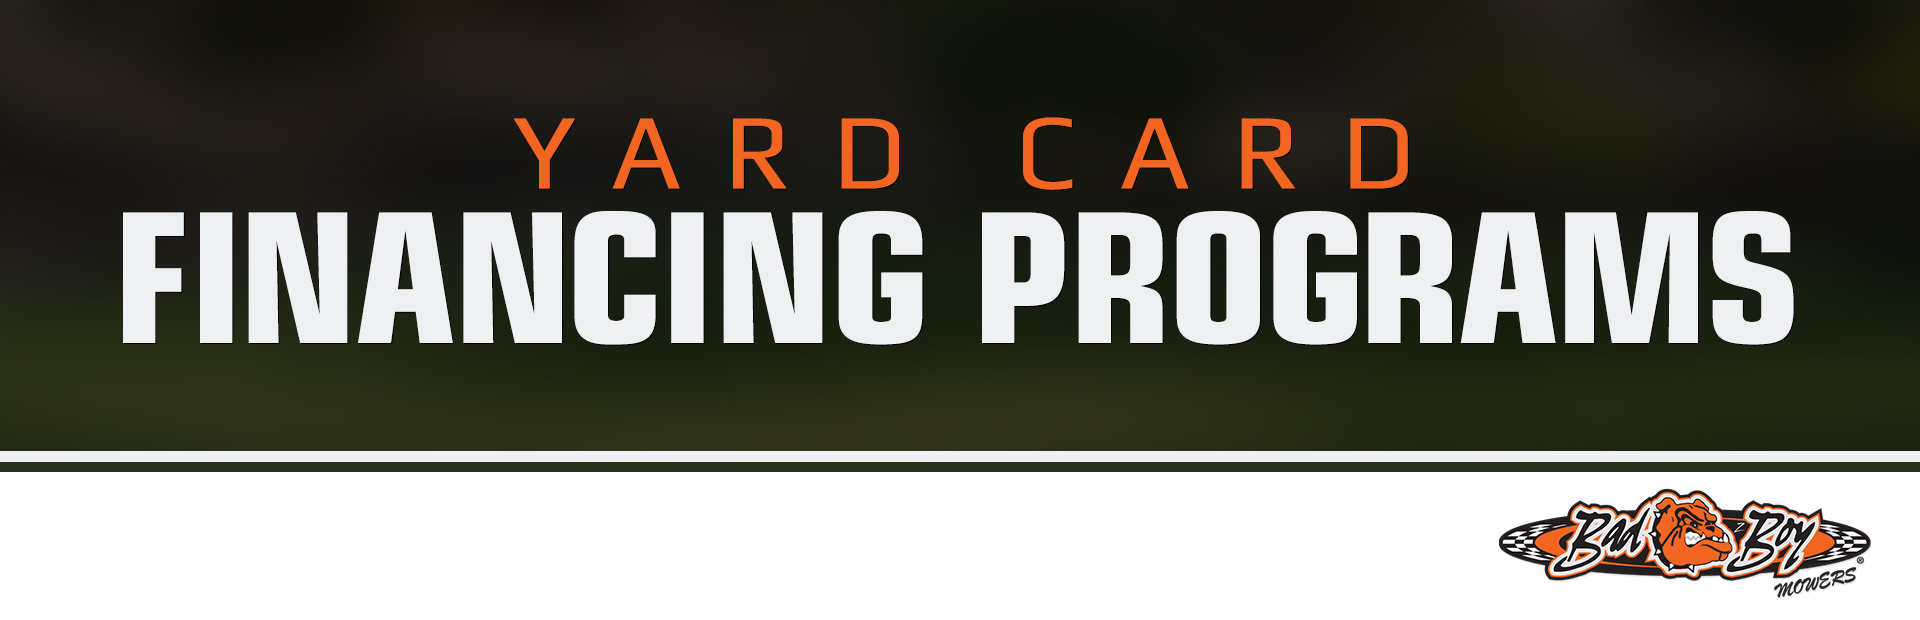 Bad Boy: Yard Card Financing Programs